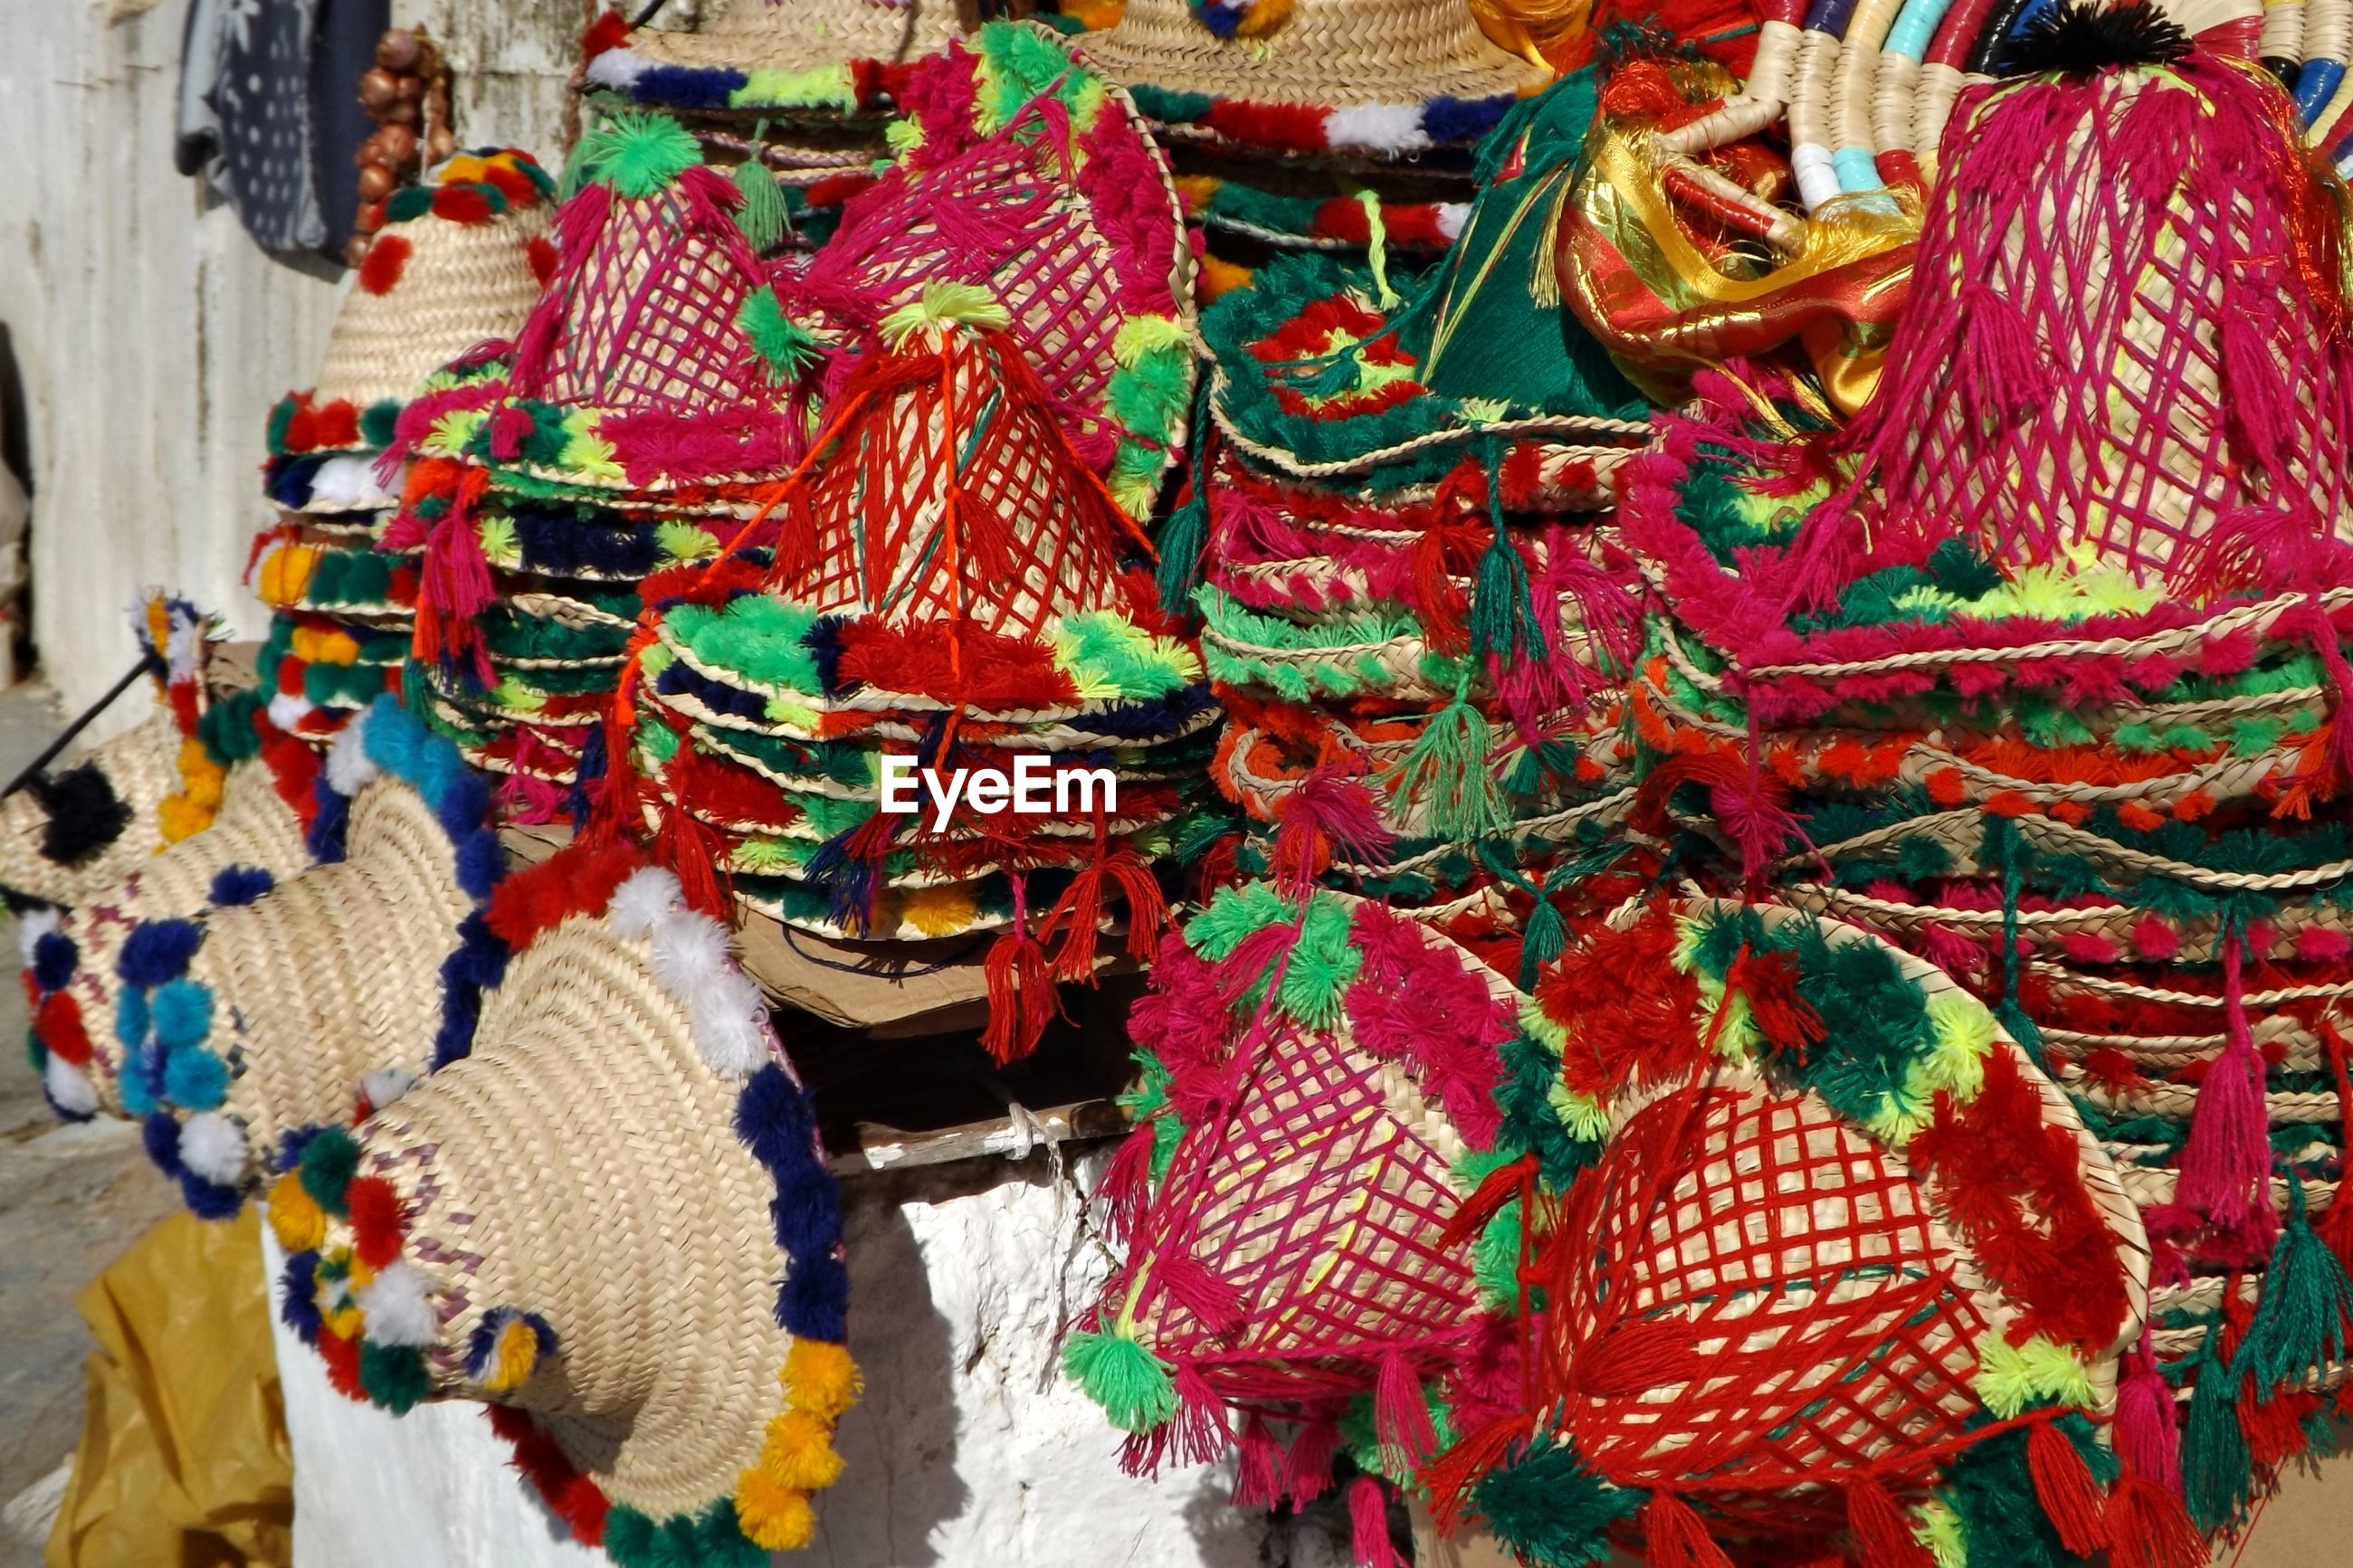 Close-up of colorful hats for sale at market stall